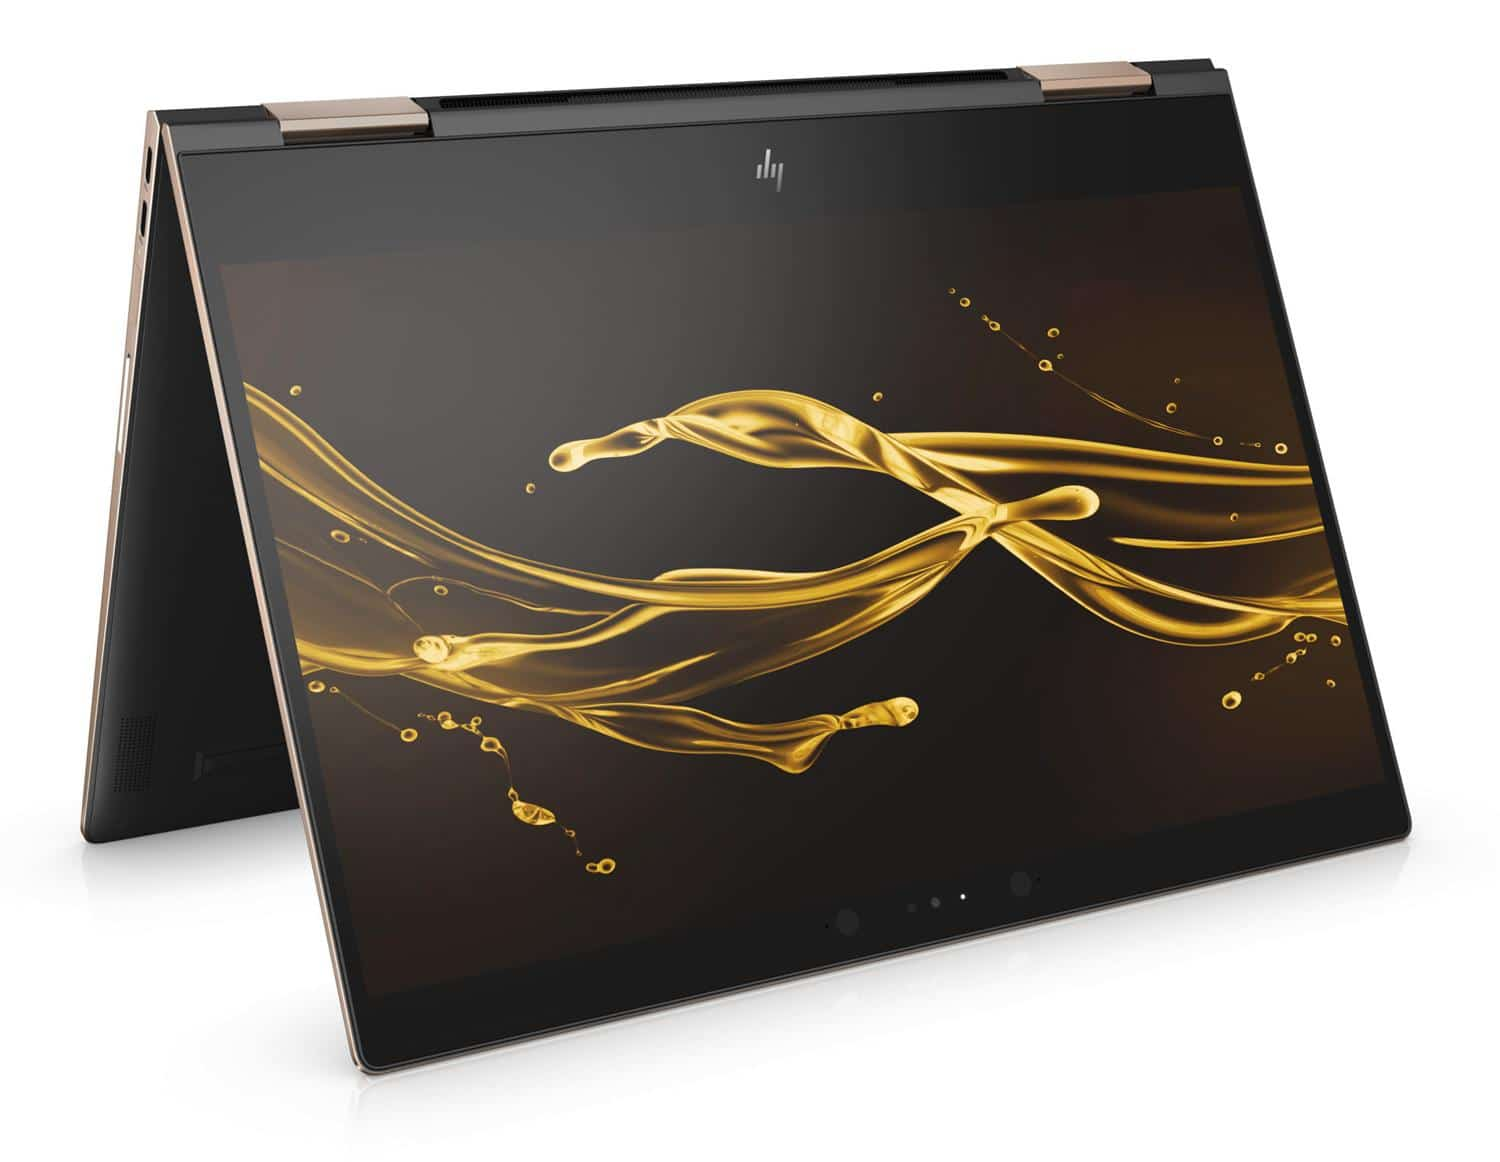 HP Spectre x360 13-ae019nf, 13 pouces Tablette i7 Refresh IPS SSD256 à 1399€